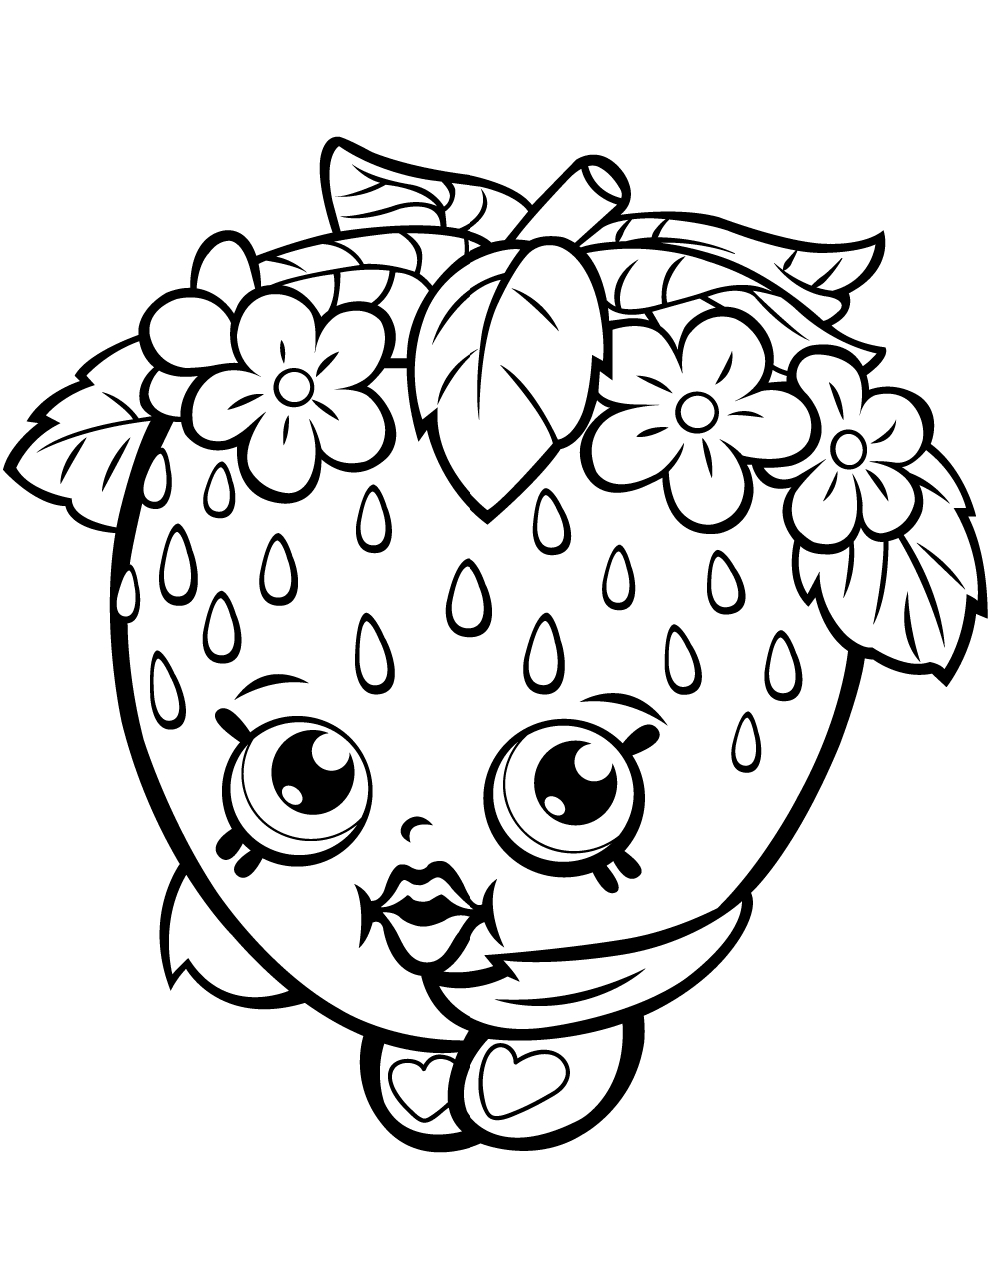 995x1288 Tommy Ketchup Shopkins Coloring Pages Collections 4